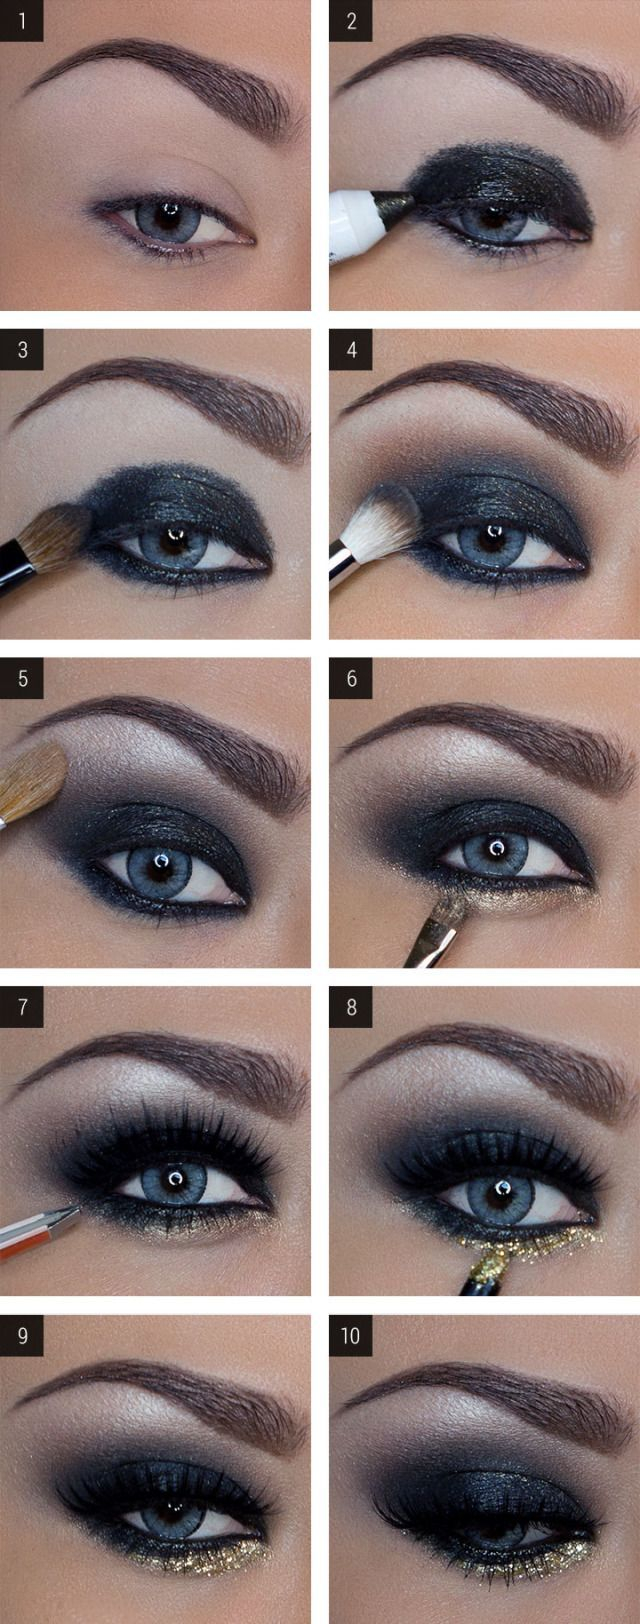 Cool Black Eye Makeup Simple Party Makeup Tips For Black Women To Look Gorgeous